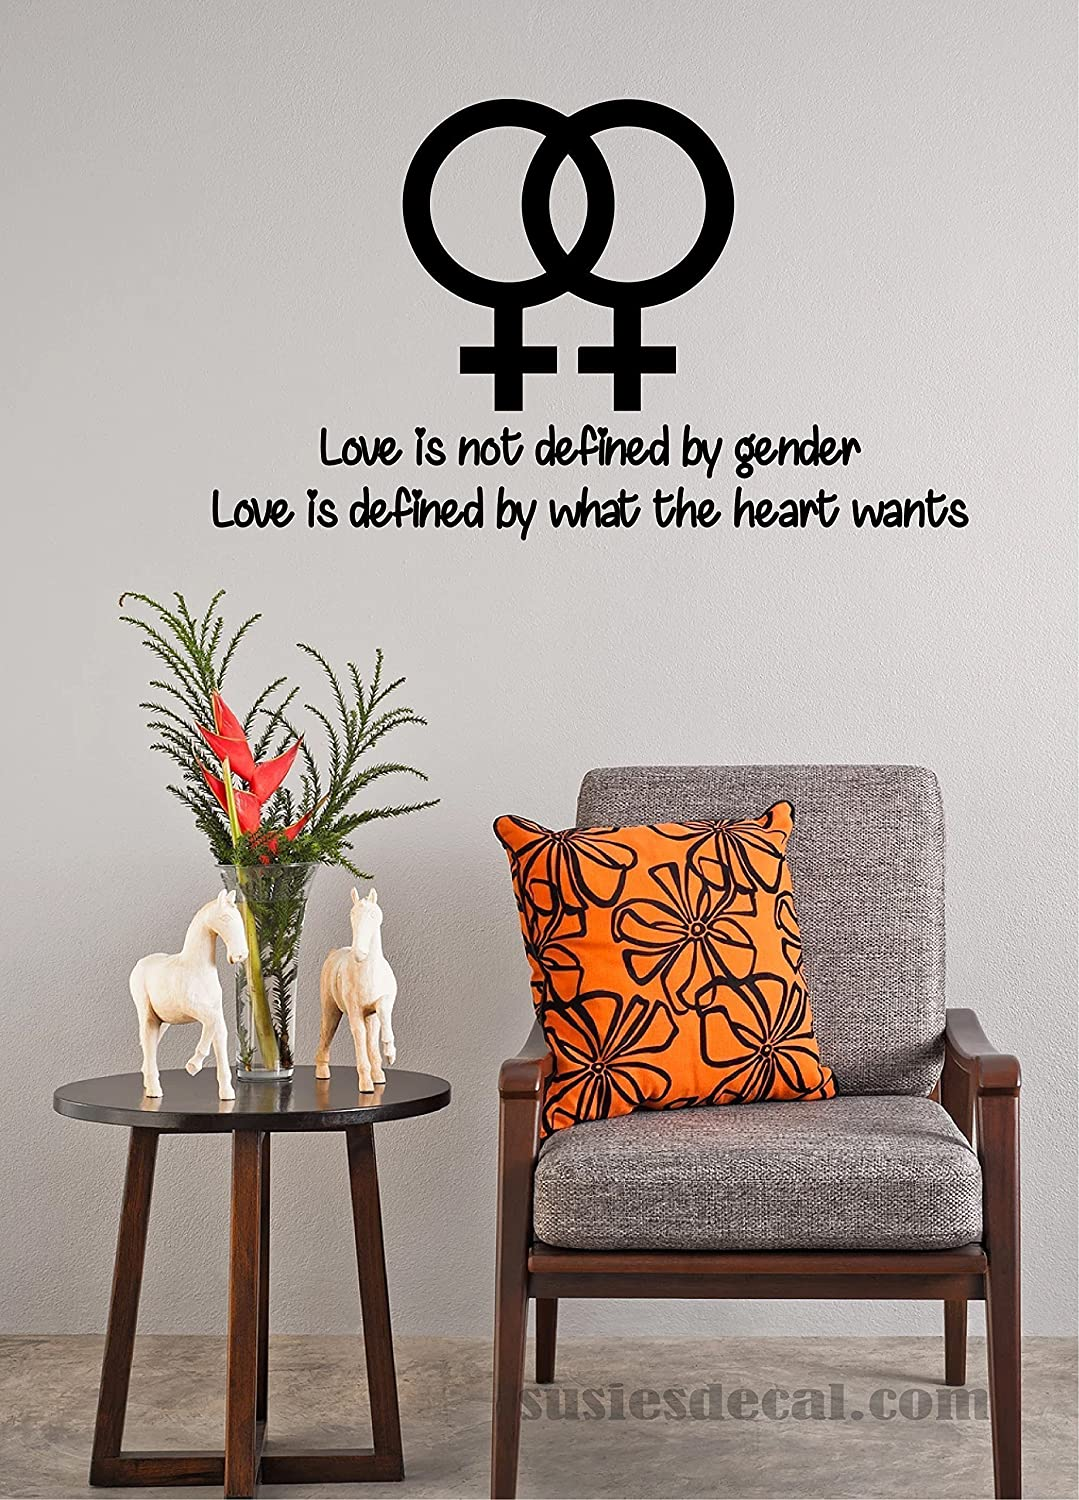 Amazoncom Lgbt Wall Decal Sticker Love Is Not Defined By Gender